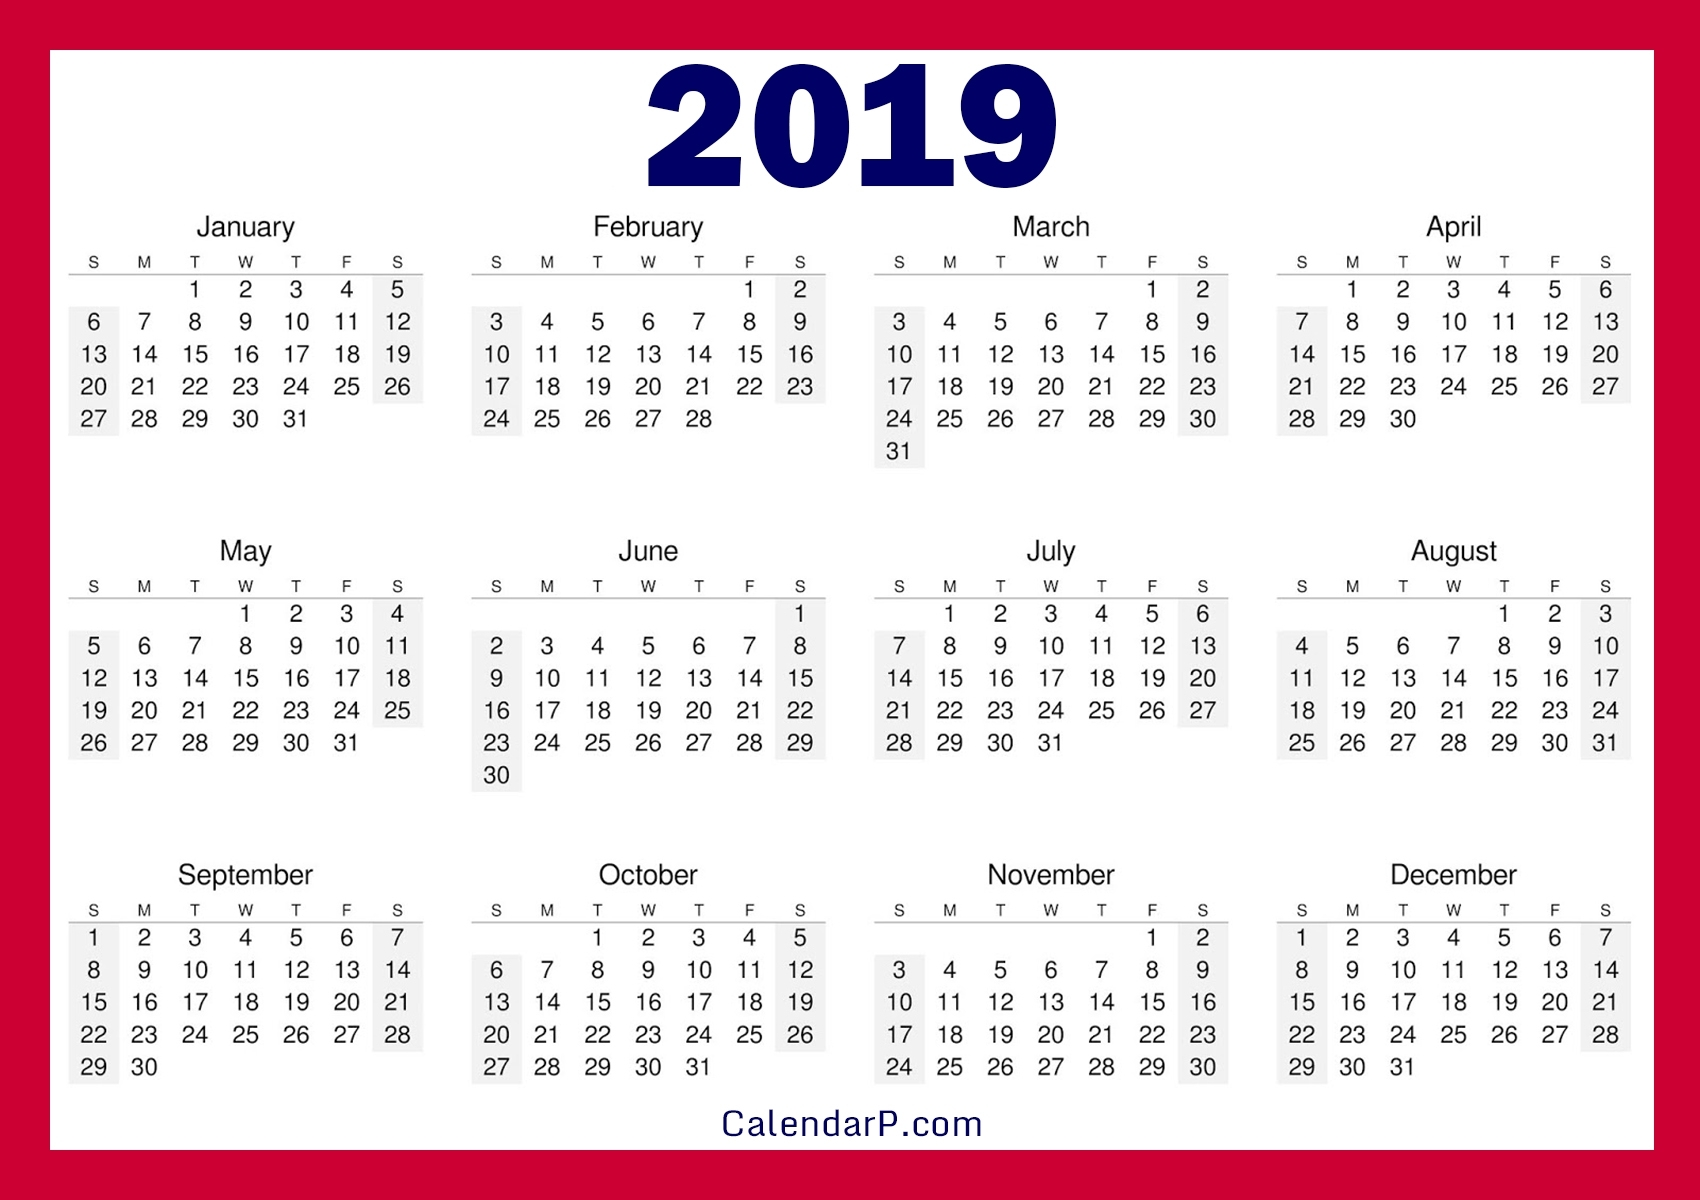 Printable Free 2019 Calendar, Horizontal – Calendarp